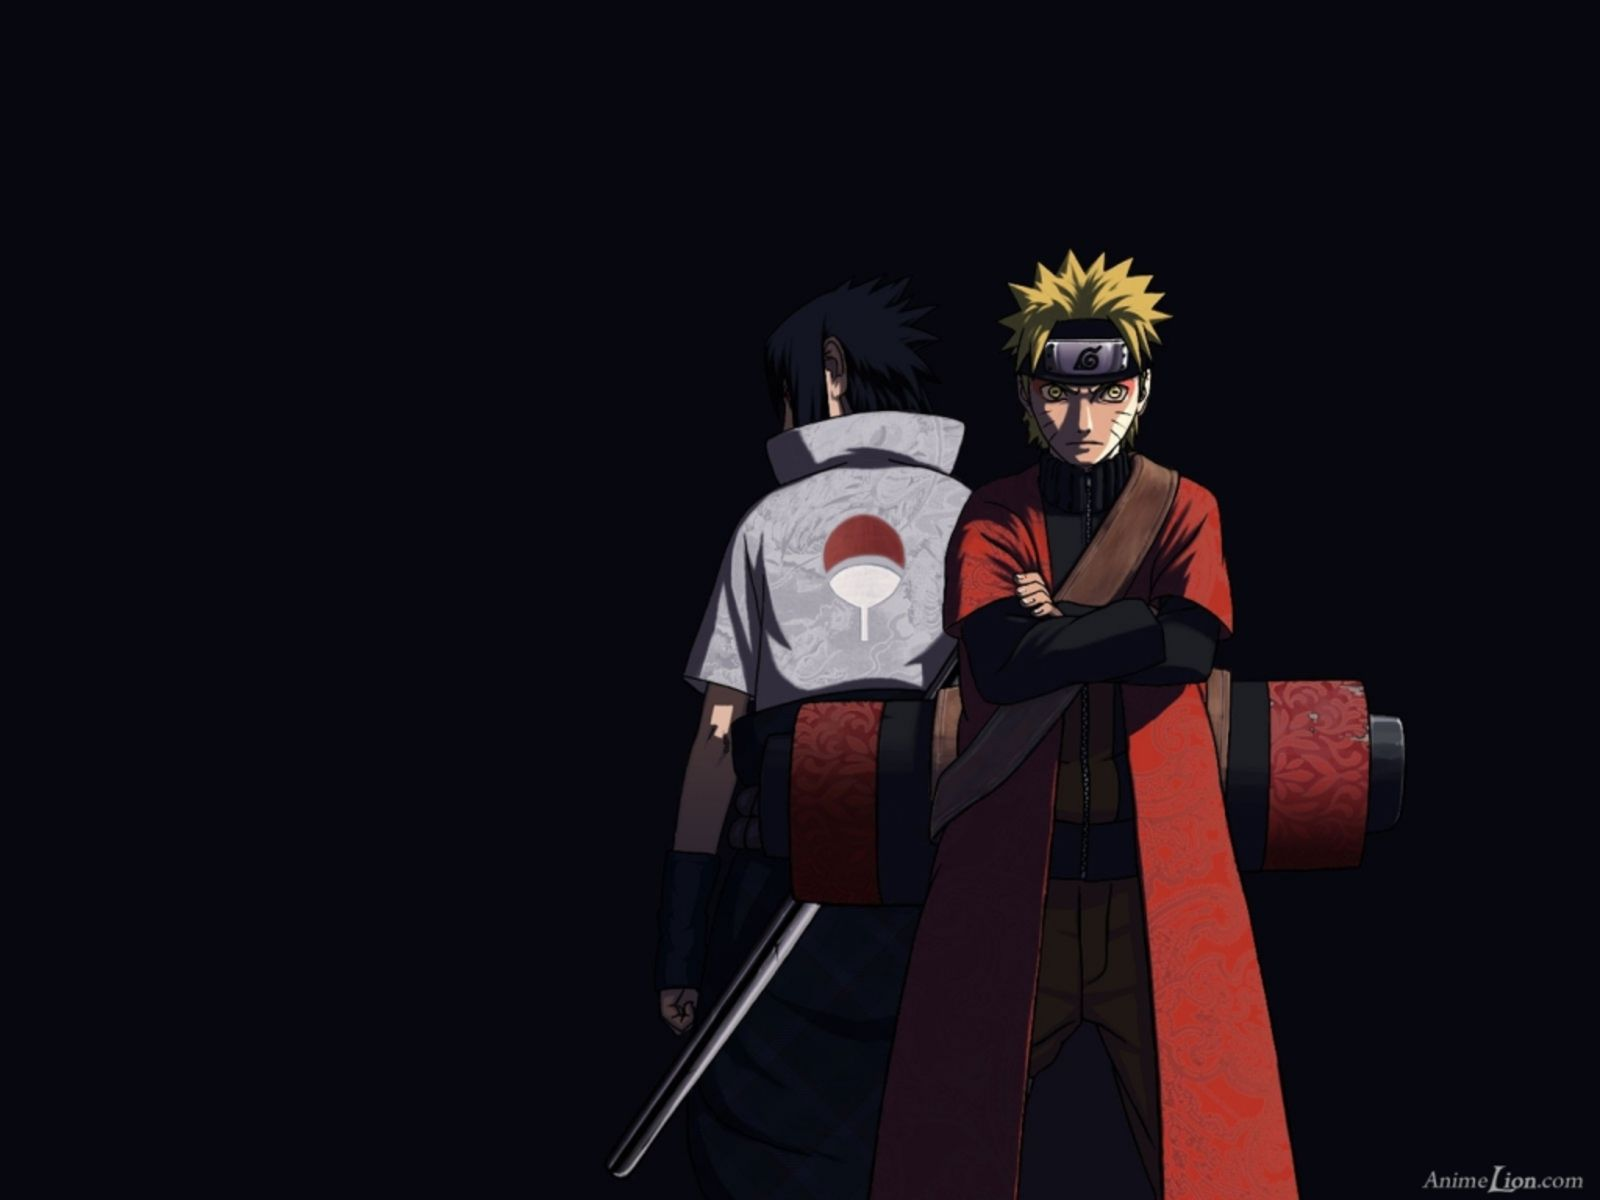 Naruto Shippuden Wallpaper Full Hd Zxh With Images Naruto